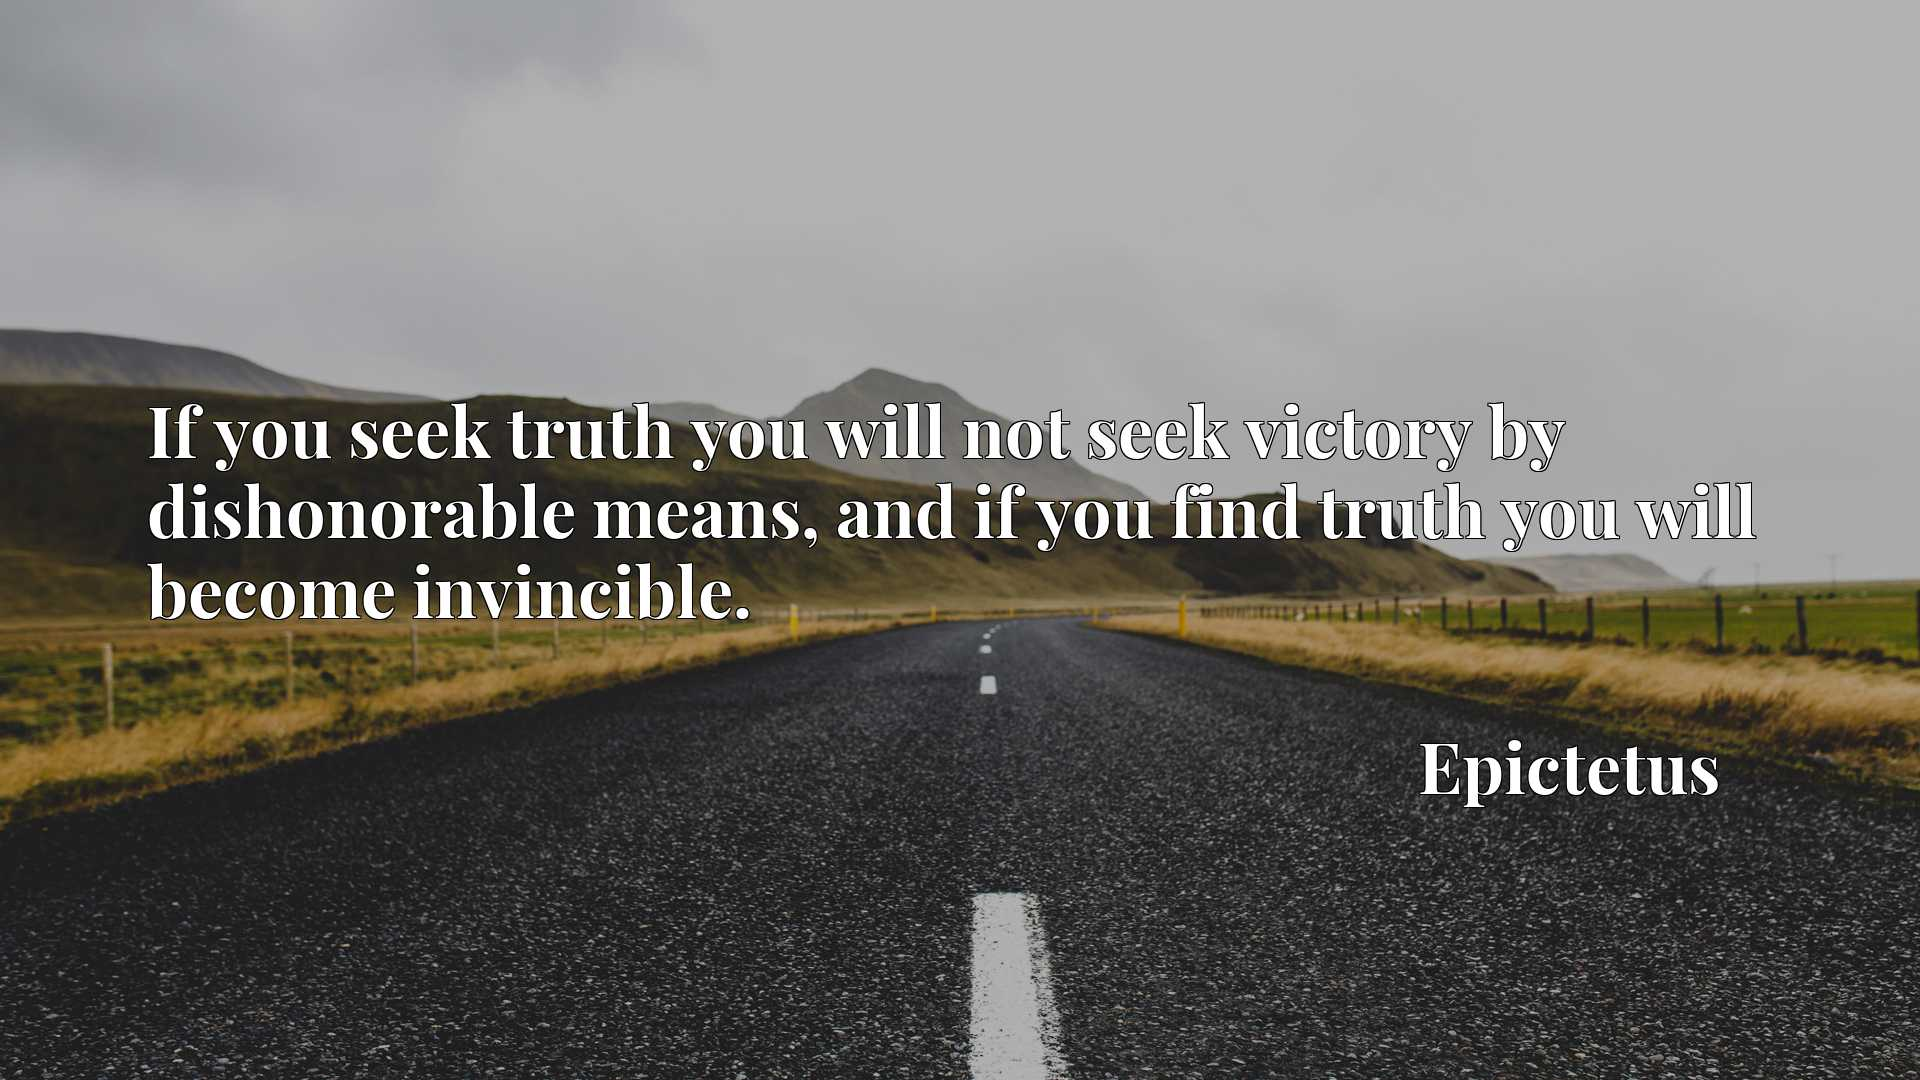 Quote Picture :If you seek truth you will not seek victory by dishonorable means, and if you find truth you will become invincible.